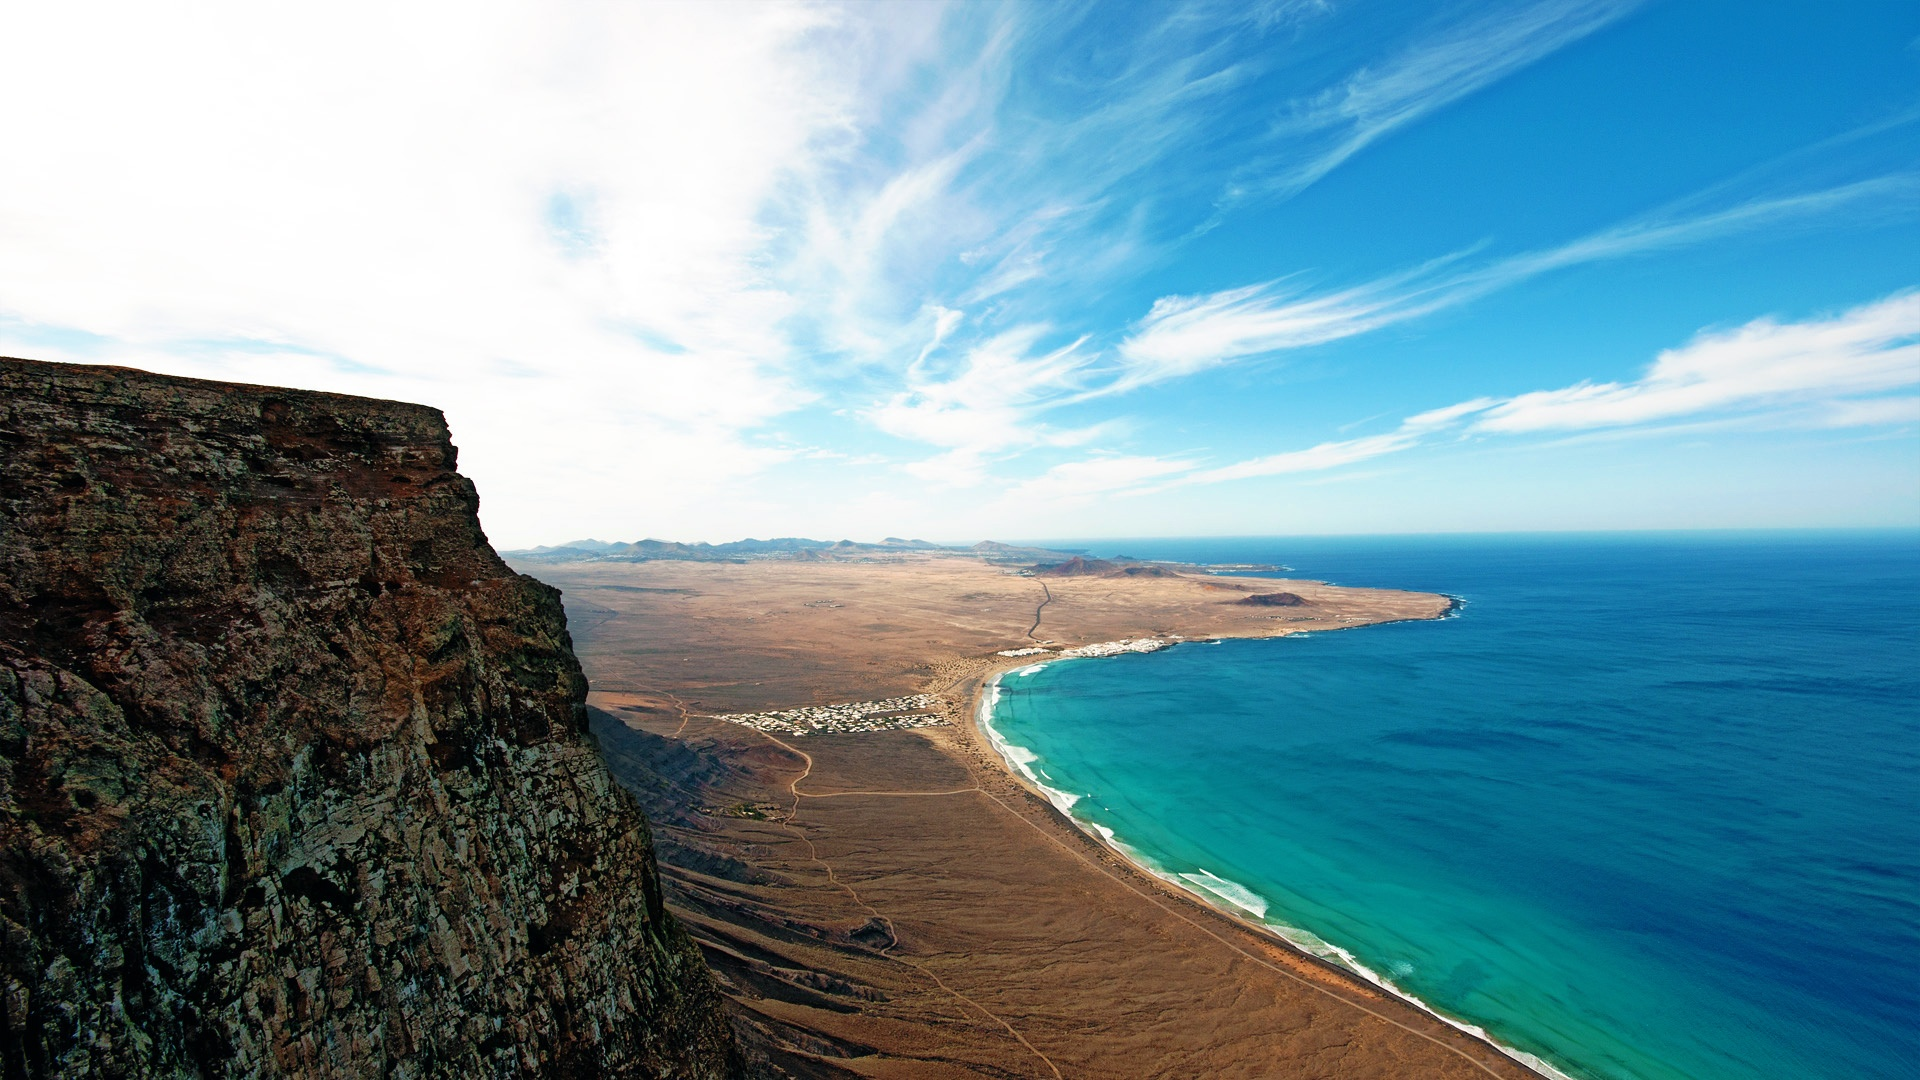 Lanzarote Island Wallpapers HD Wallpapers 1920x1080